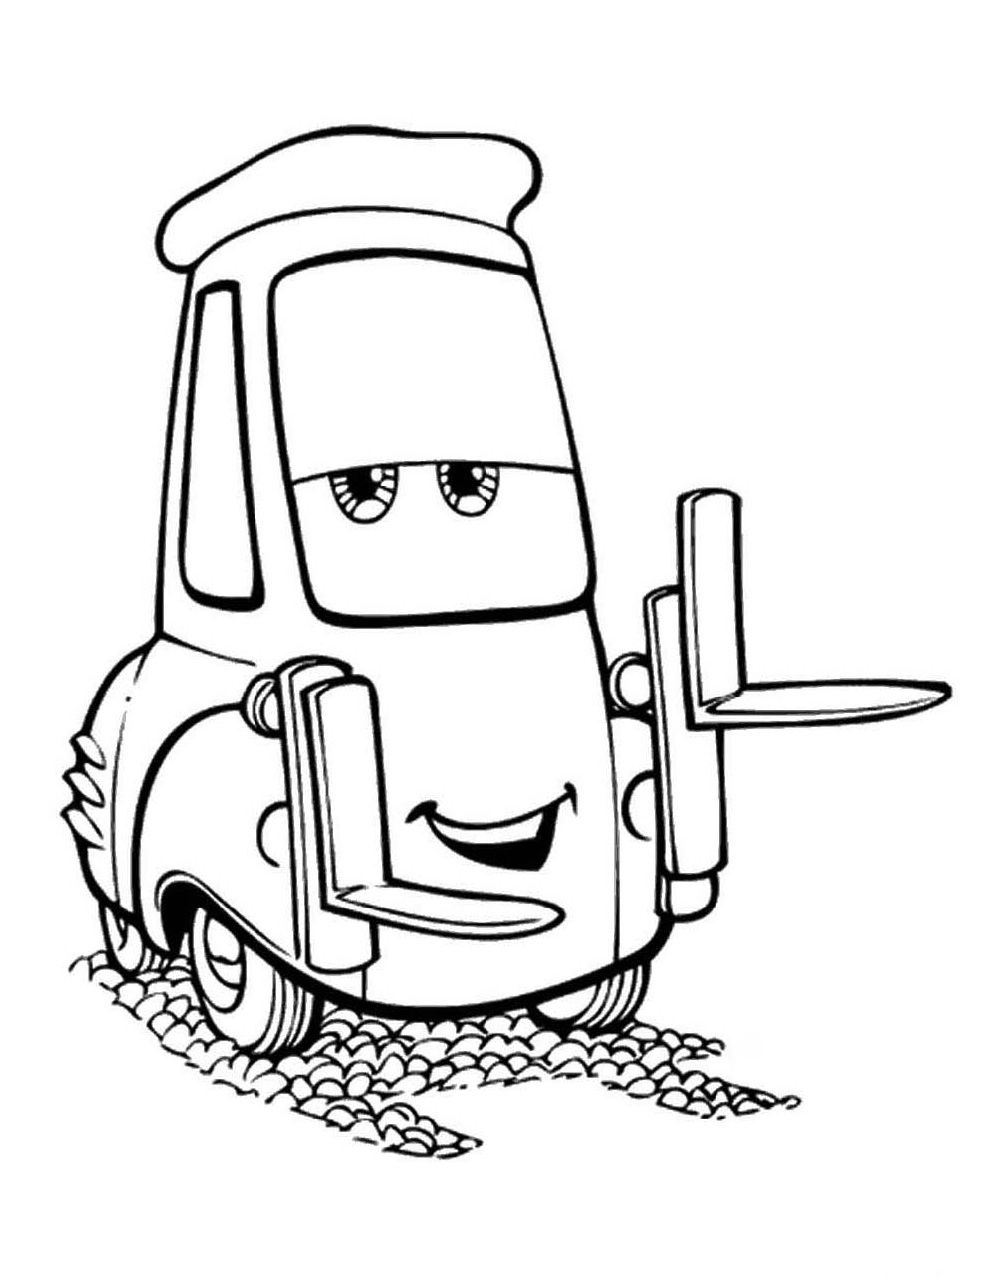 cars disney coloring pages printable - photo#10